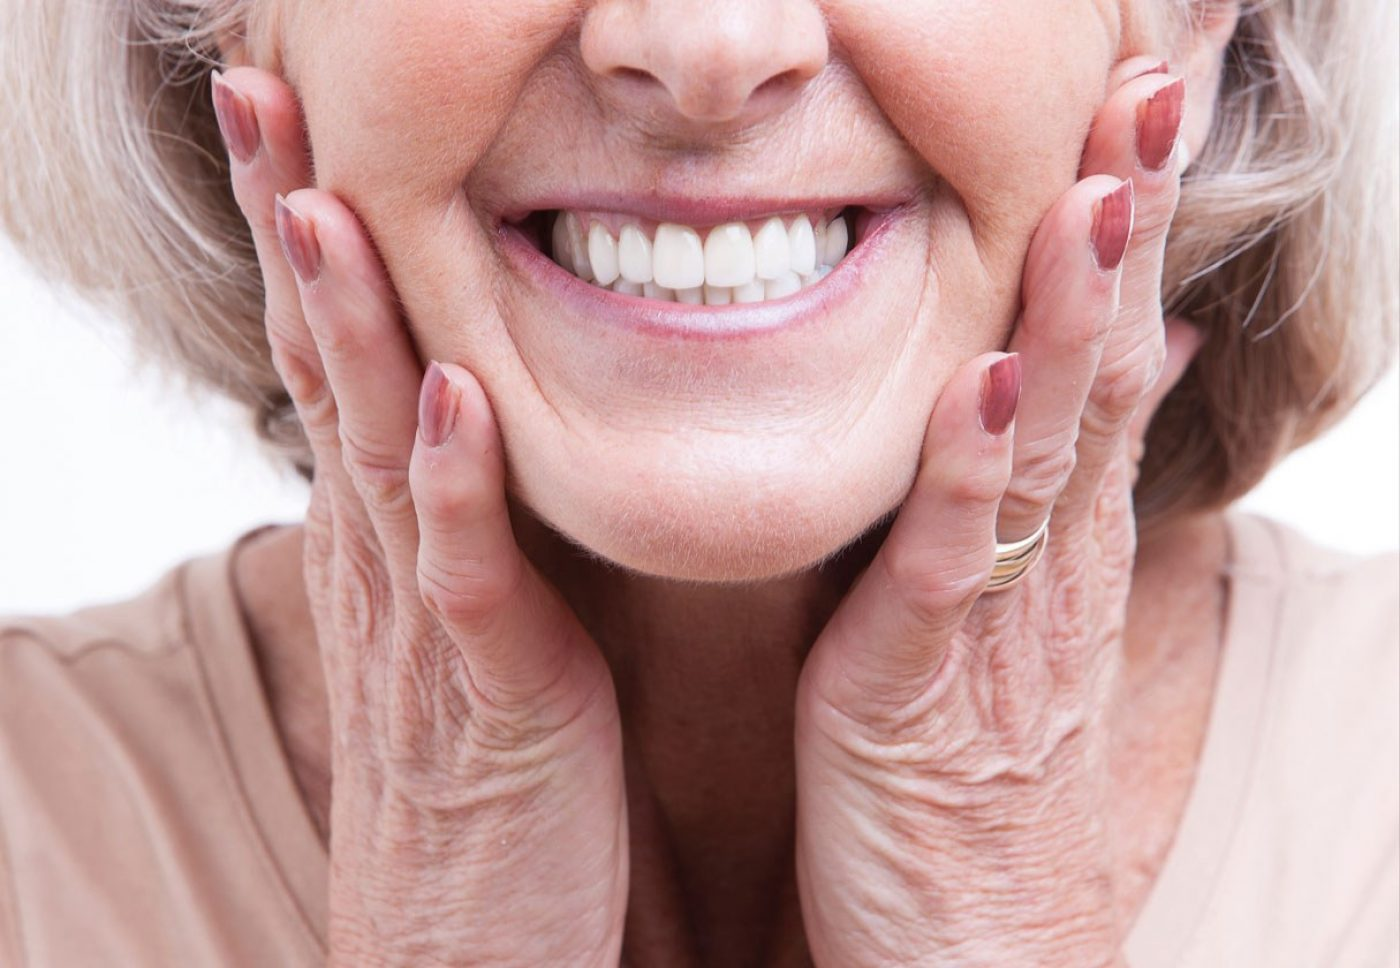 Dentures Portman Dental And Implant Clinic Maidenhead